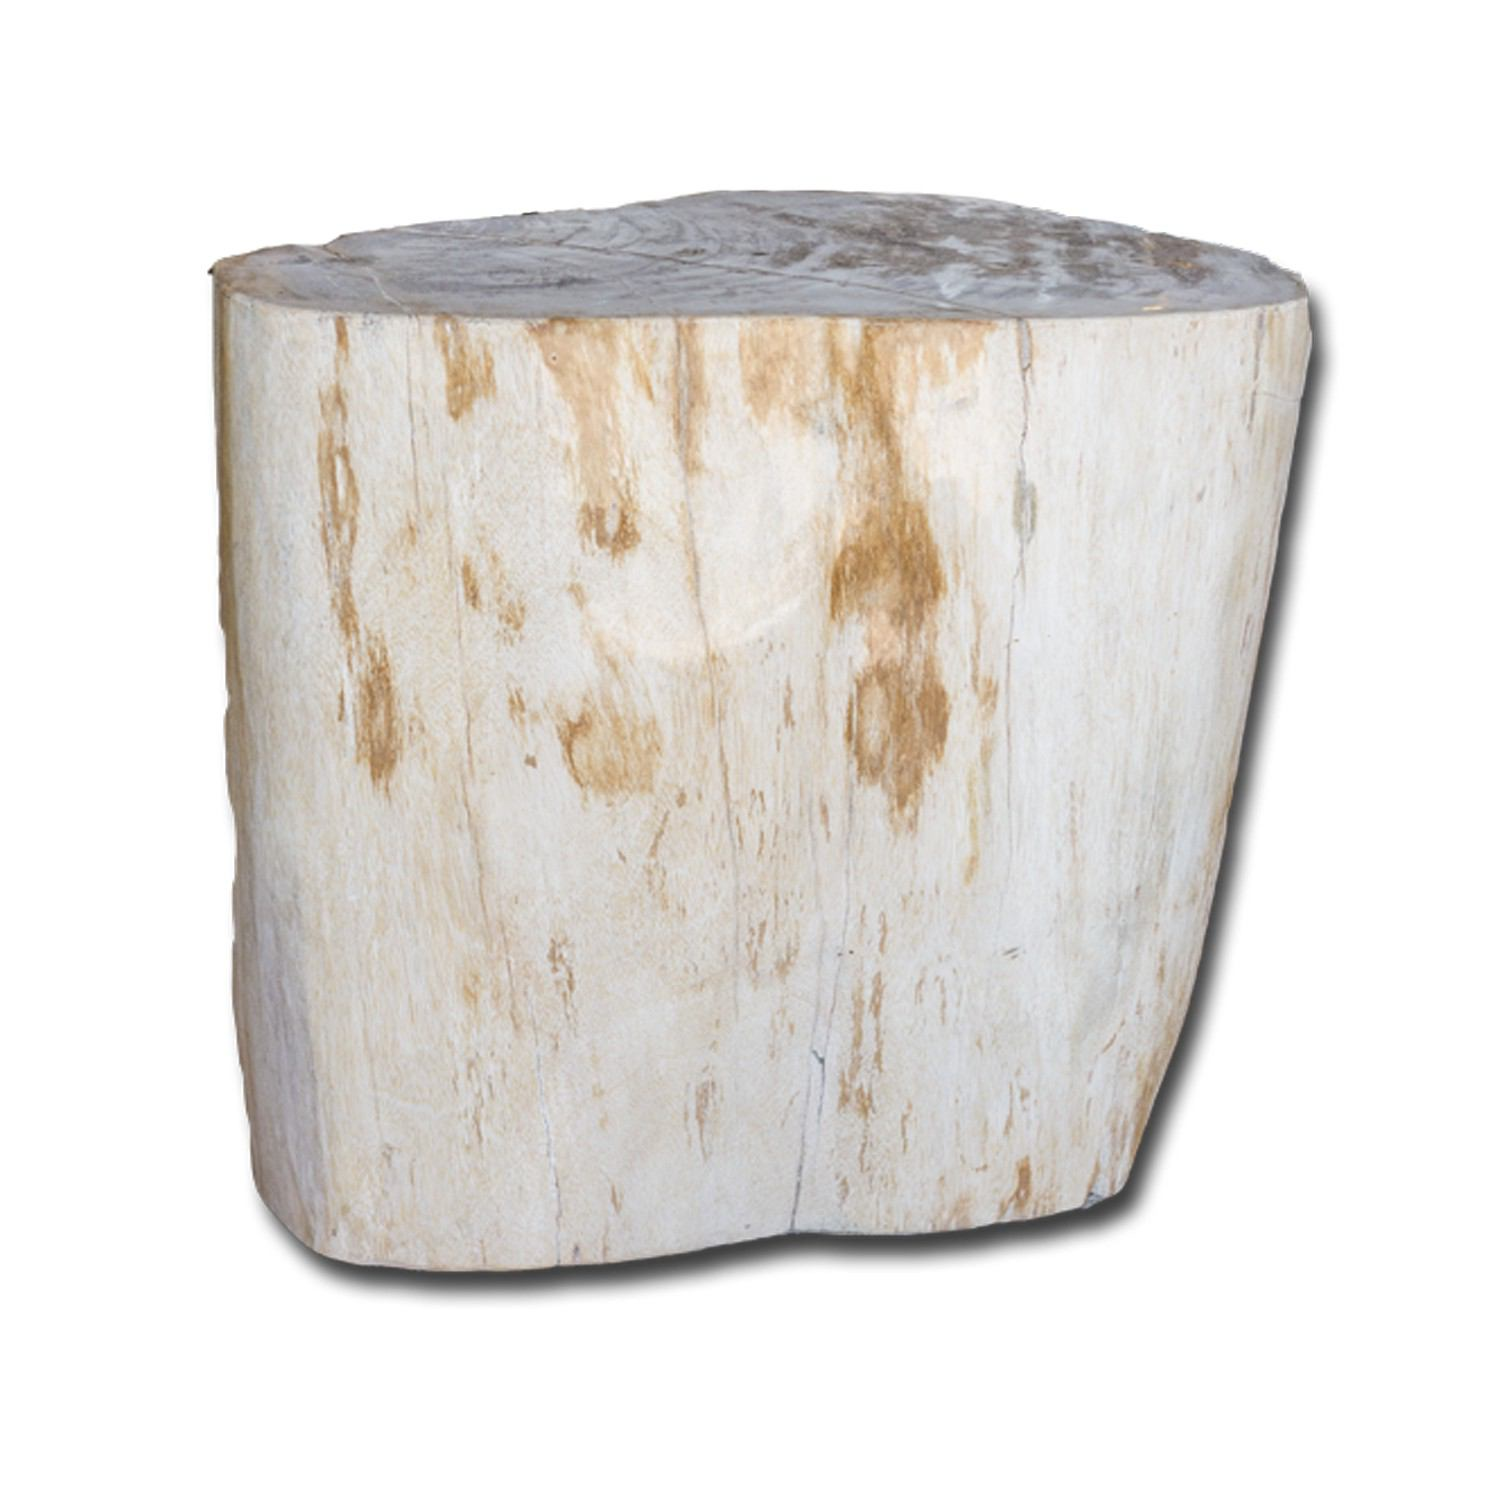 PF-2138 Petrified Wood Stool by AIRE Furniture